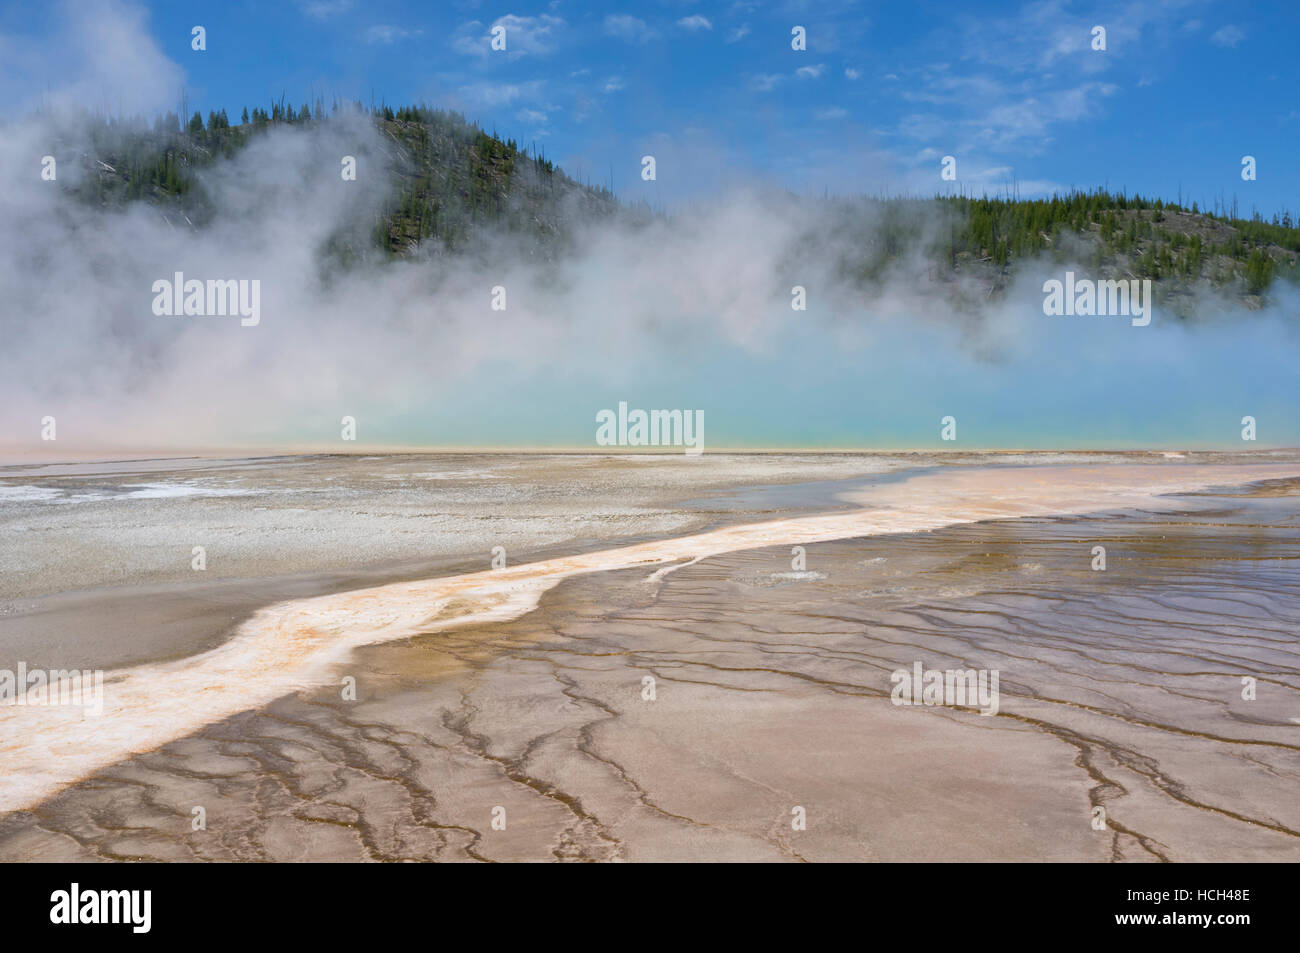 Teton County, Wyoming: Blue steam rising from Grand Prismatic Spring at Yellowstone National Park. - Stock Image